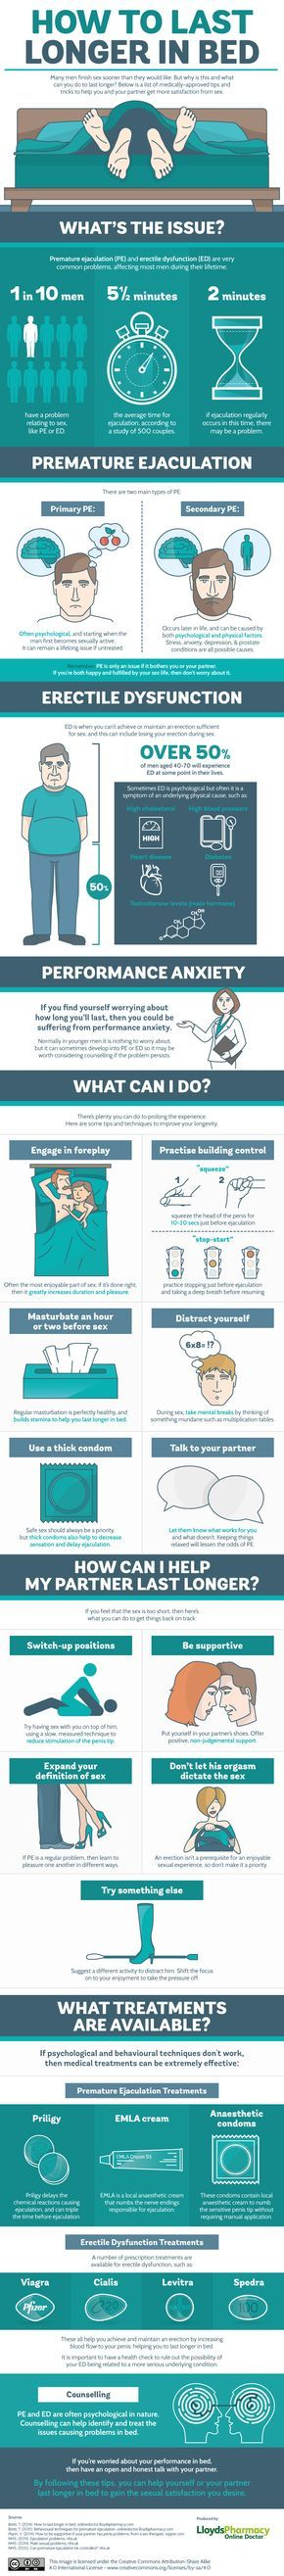 How to Last Longer in Bed #infographic